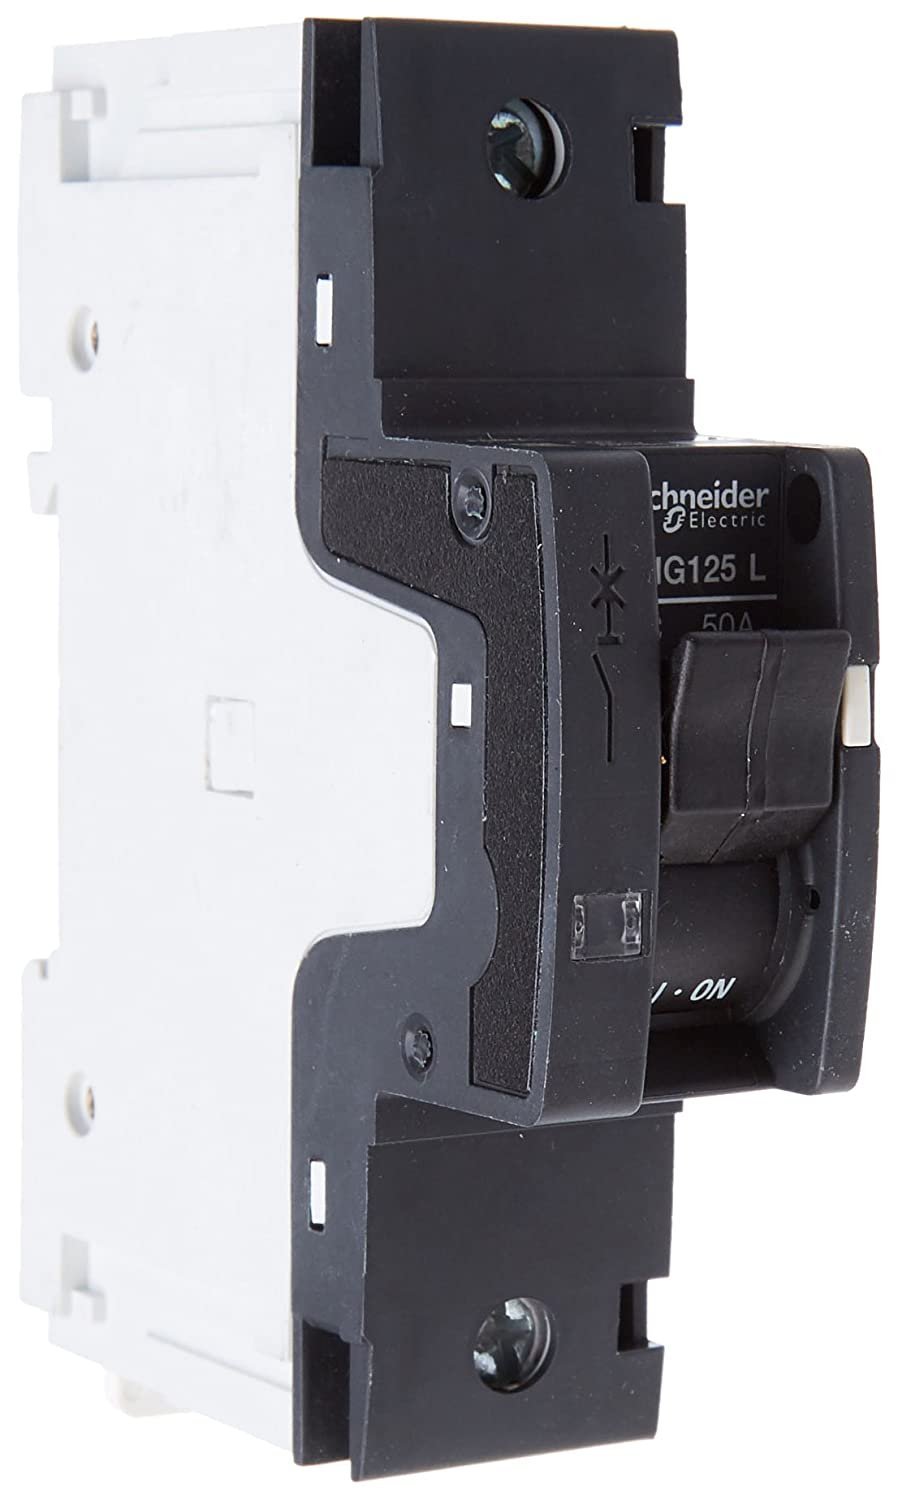 Schneider Electric 18783 NG125L 1P 50A, White